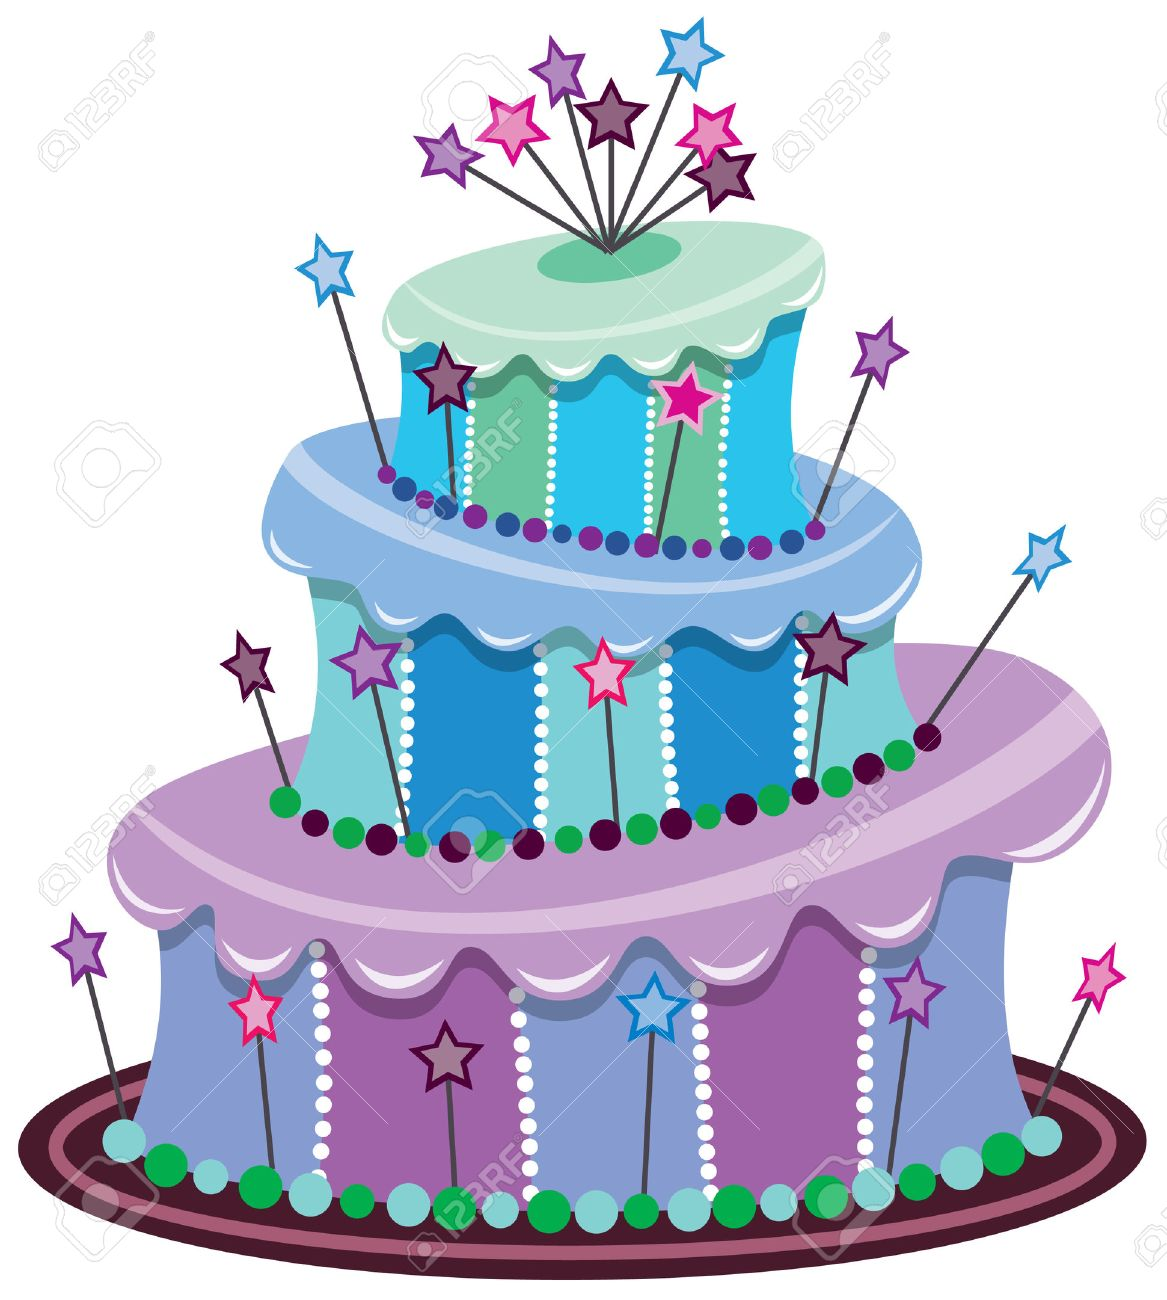 Astounding Big Birthday Cake Royalty Free Cliparts Vectors And Stock Funny Birthday Cards Online Alyptdamsfinfo